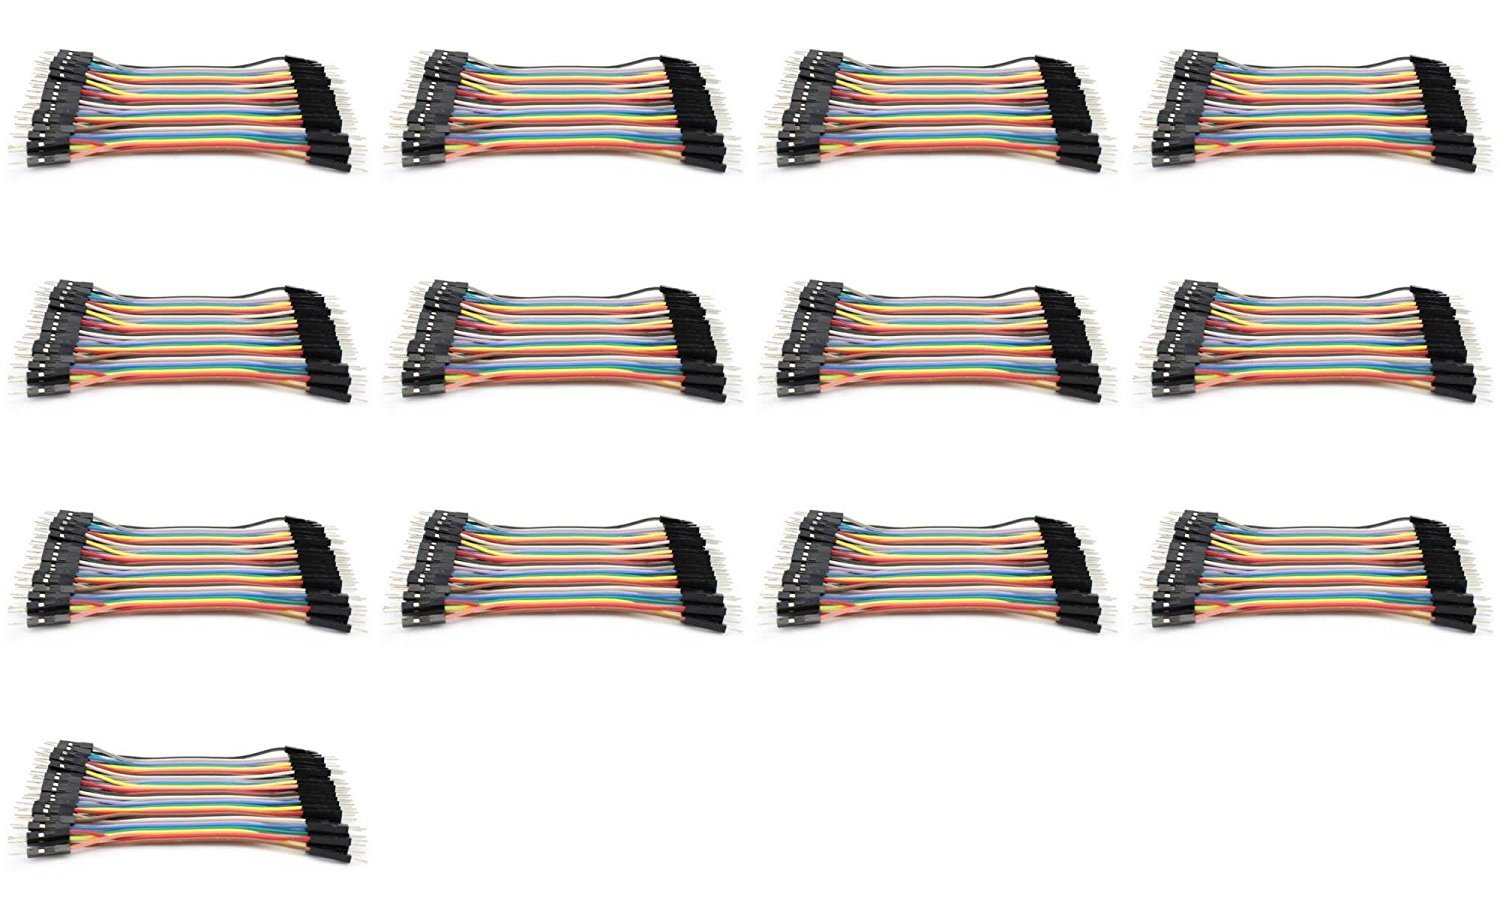 13 x Quantity of Walkera Runner 250 (R) Advanced GPS Quadcopter Drone Dupont 40 Qty 10cm 2.54mm 1pin Male to Male Jumper Wire Dupont Cables - FAST FROM Orlando, Florida USA